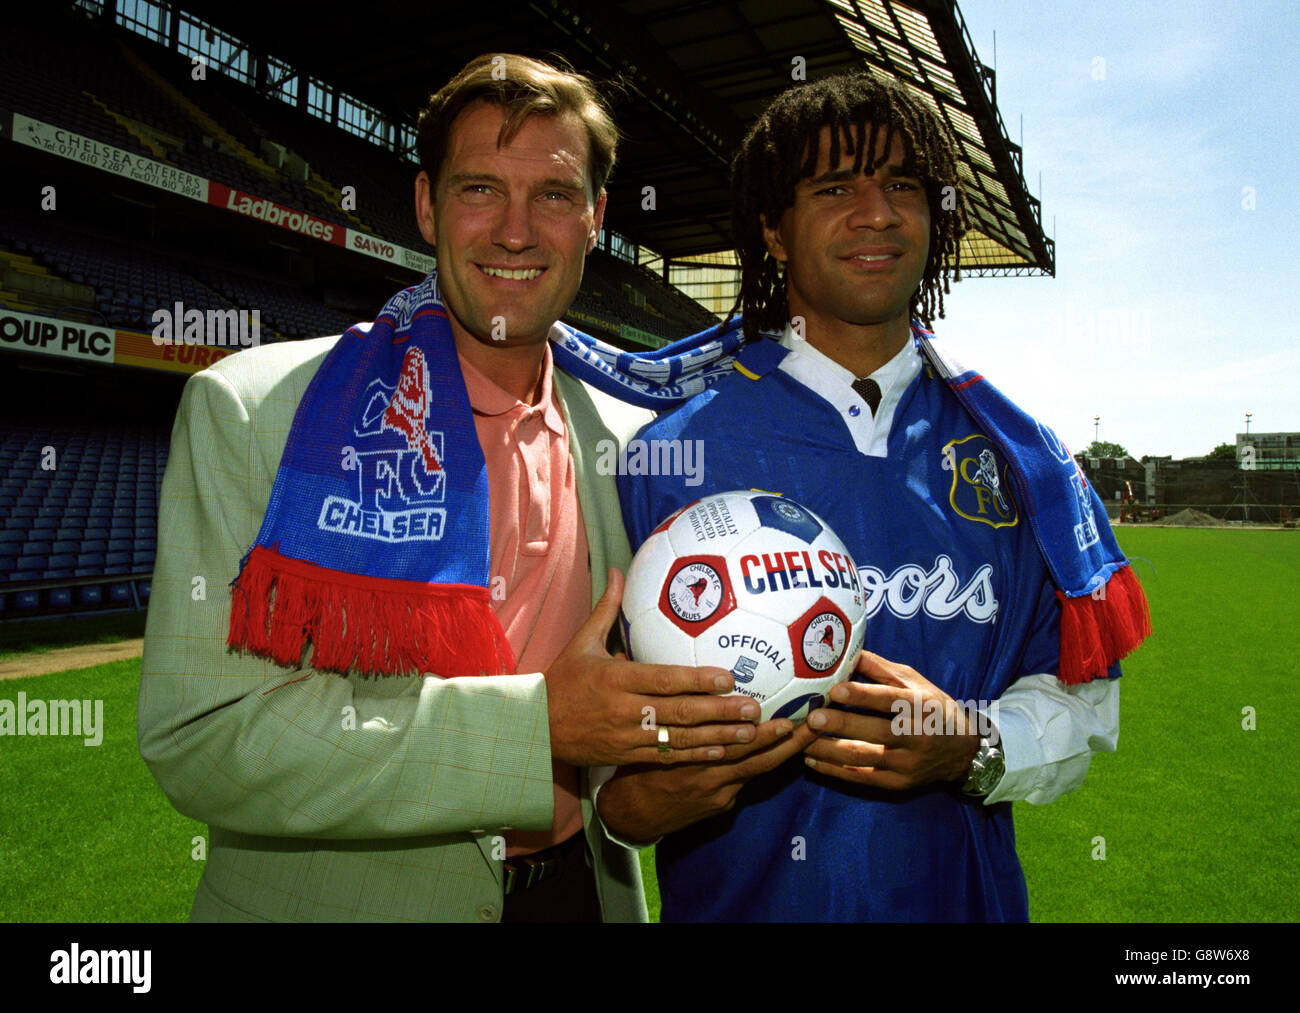 the best attitude 60326 1b431 Ruud Gullit Signs For Chelsea - Stamford Bridge Stock Photo ...